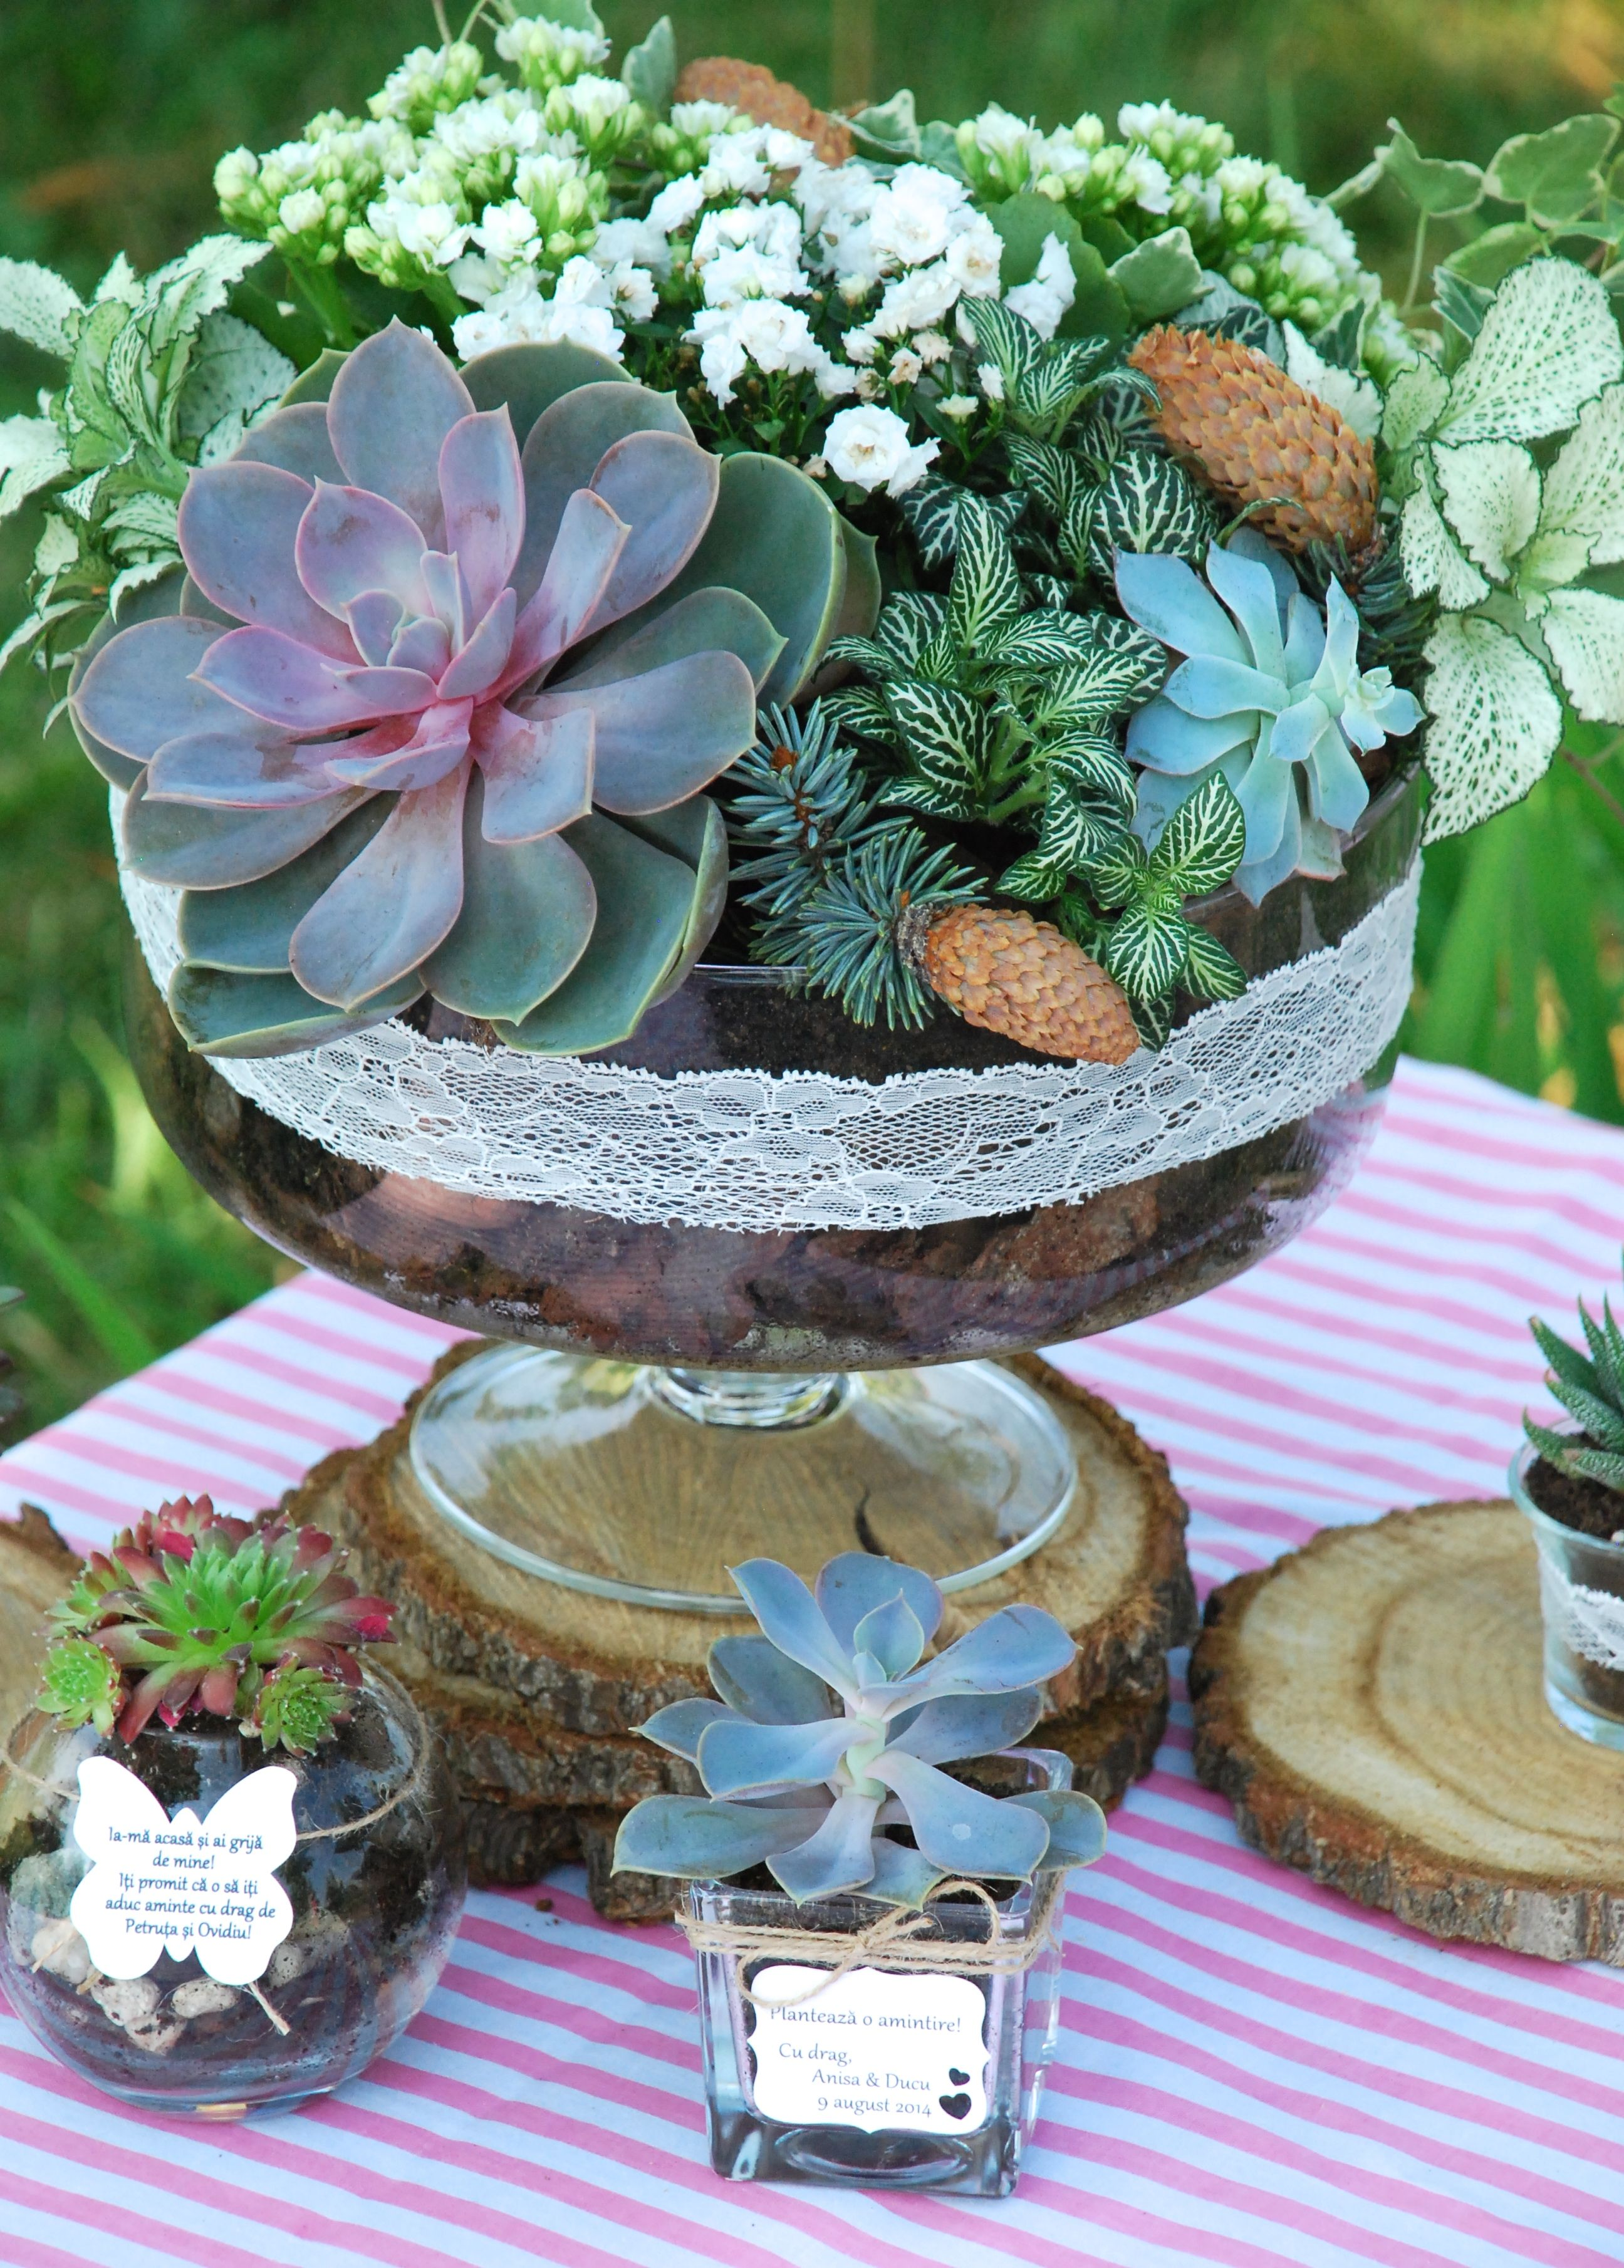 Living Plants Centerpiece And Table Arrangements For A Natural